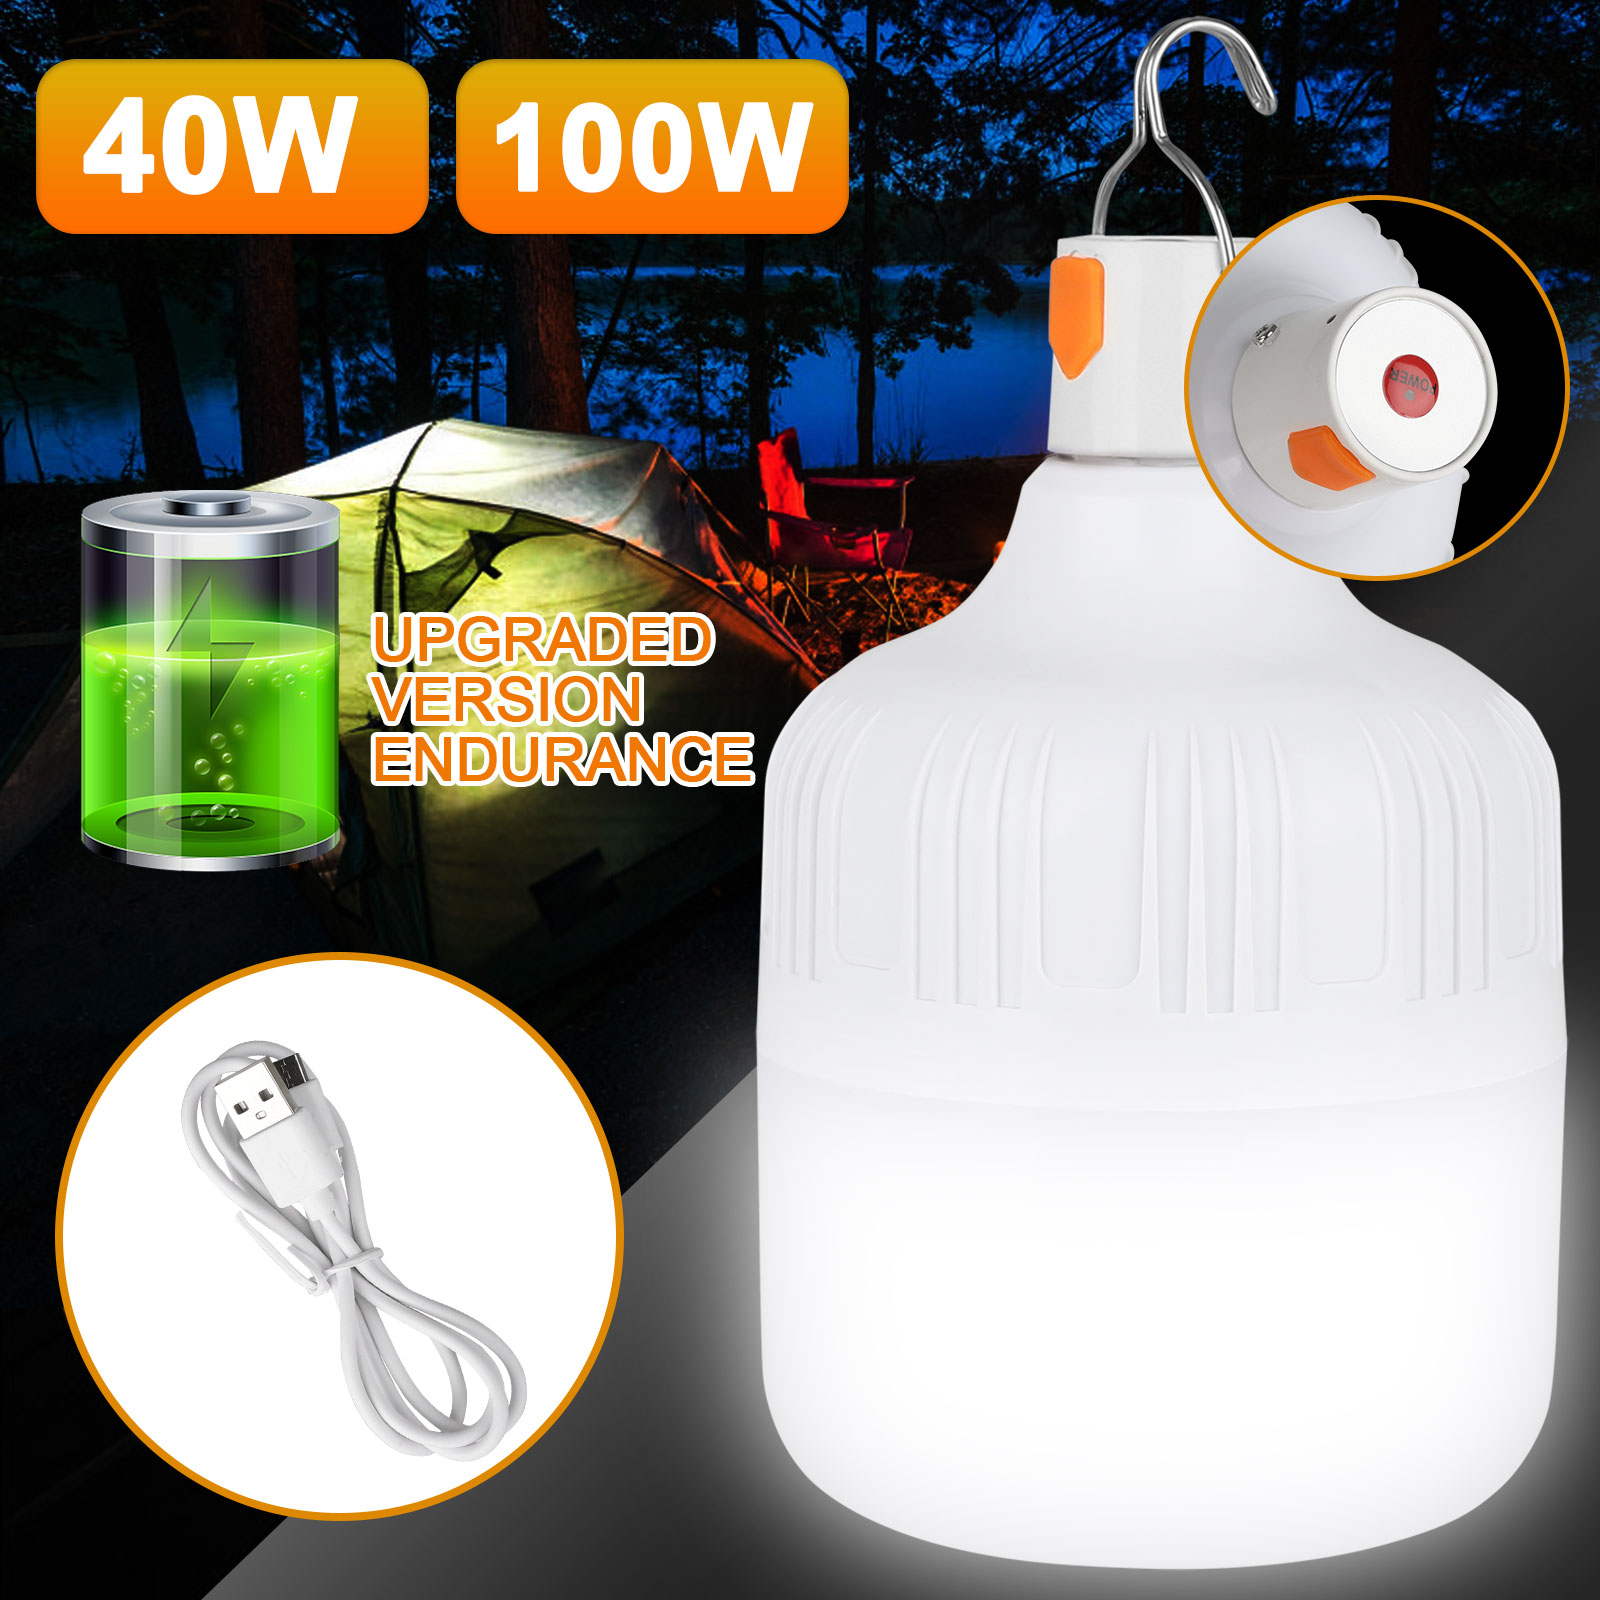 100W/40W LED Camping Light USB Rechargeable Outdoor Tent Lan